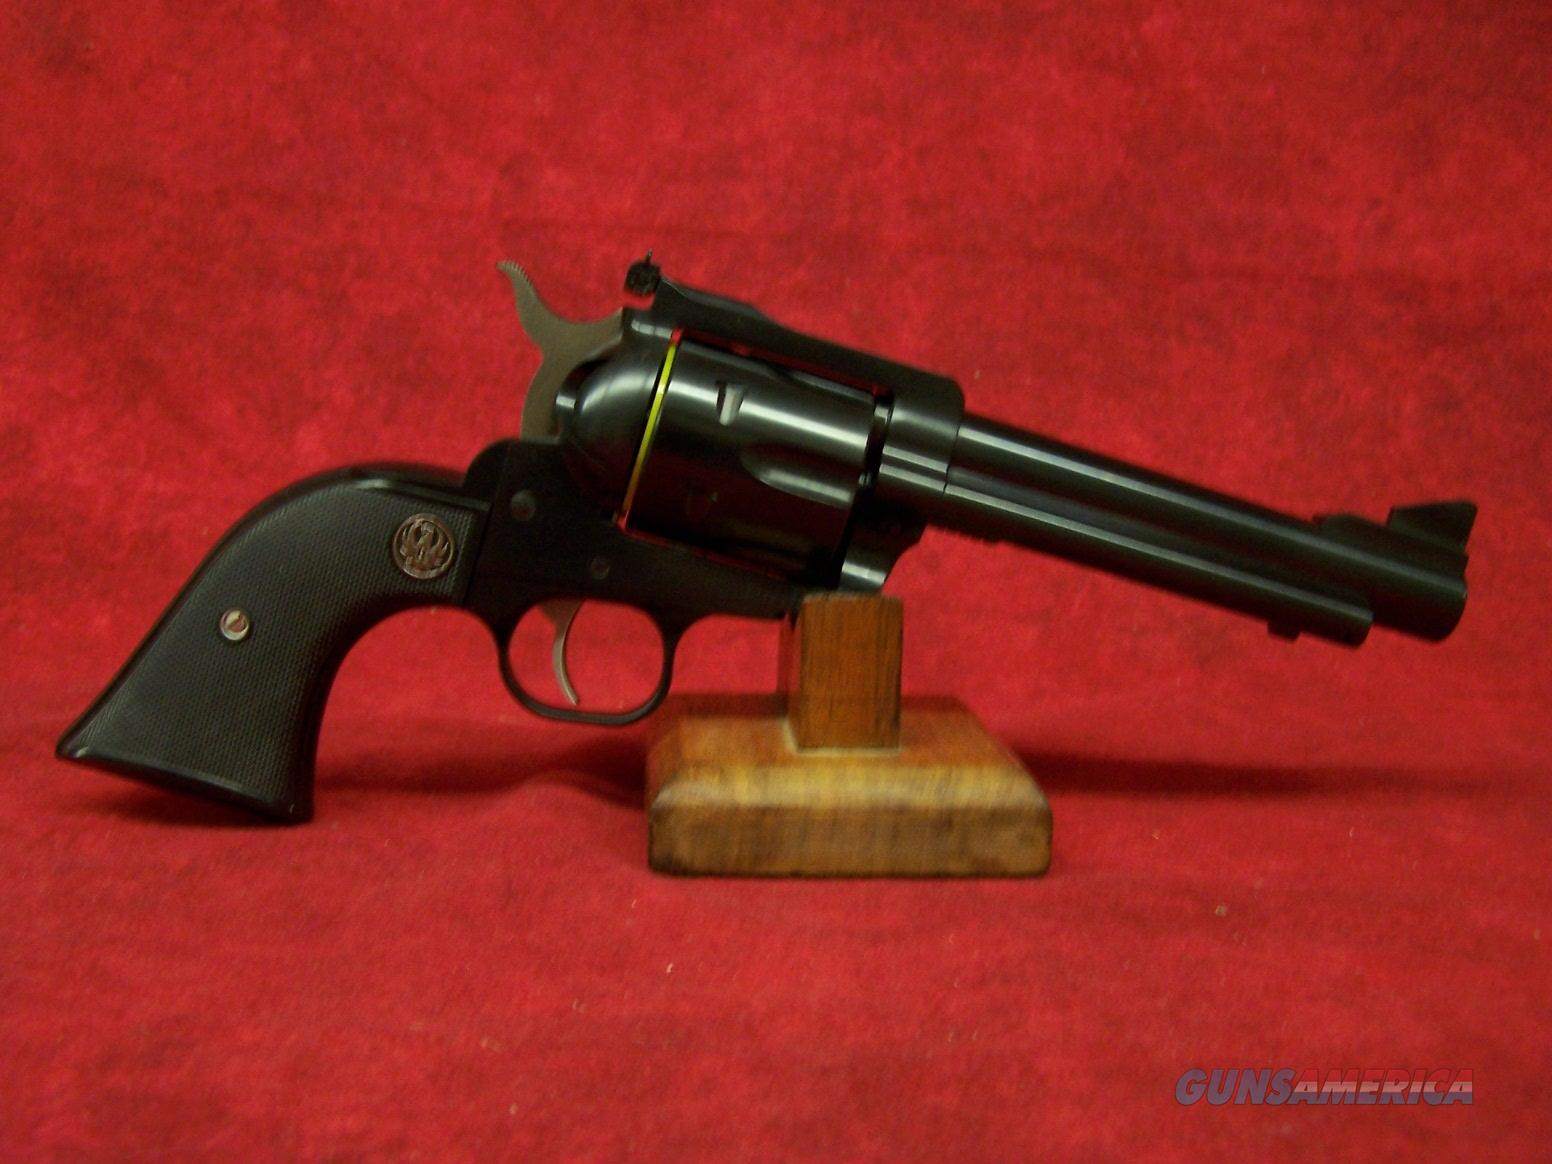 Ruger Blackhawk Convertible .45 Long Colt/.45 Auto 5.5 Inch Barrel Blue Finish (0463)  Guns > Pistols > Ruger Single Action Revolvers > Blackhawk Type